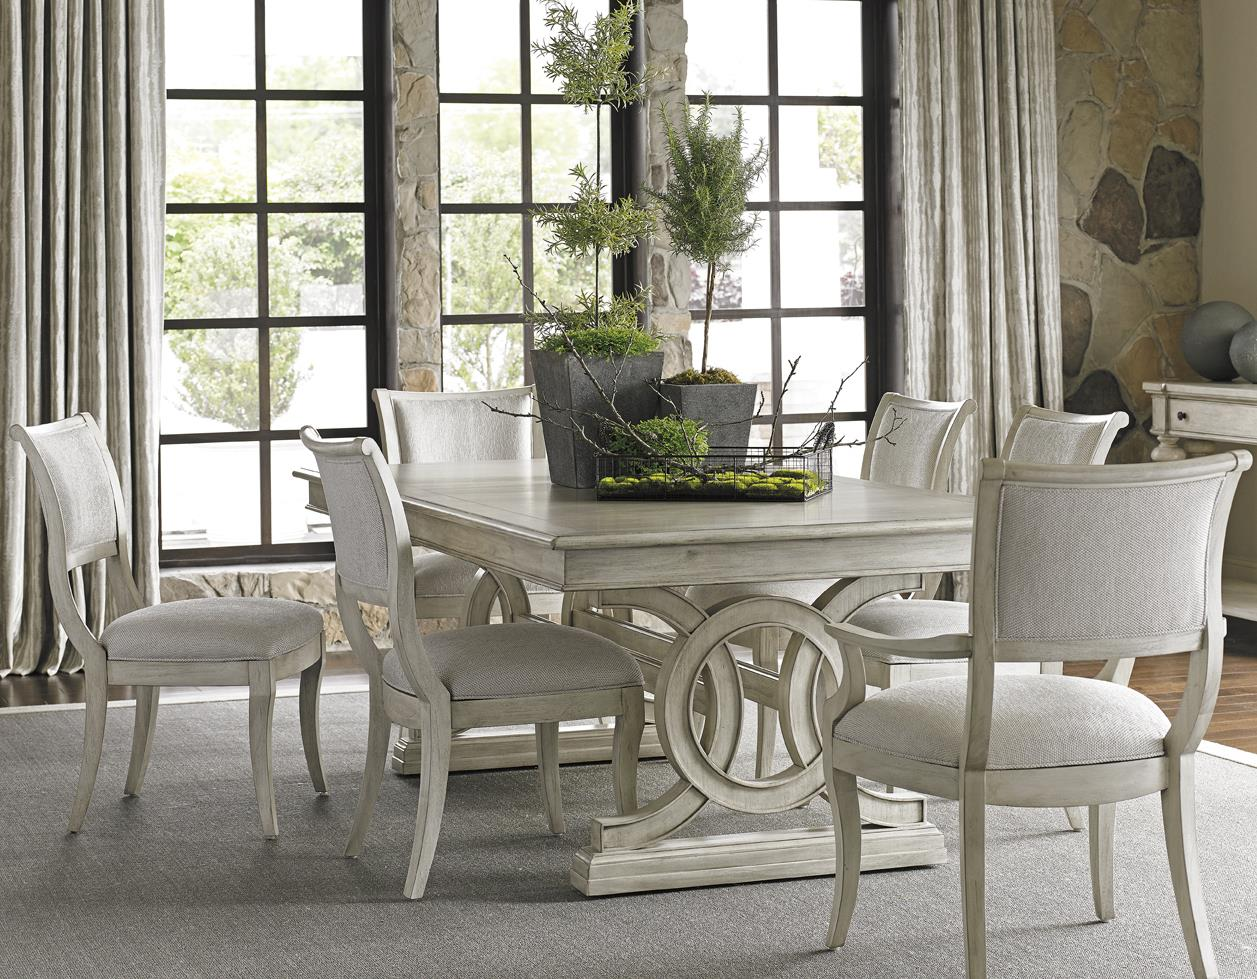 Lexington oyster bay seven piece dining set with montauk table and eastport chairs baer 39 s Lexington home brands outdoor furniture